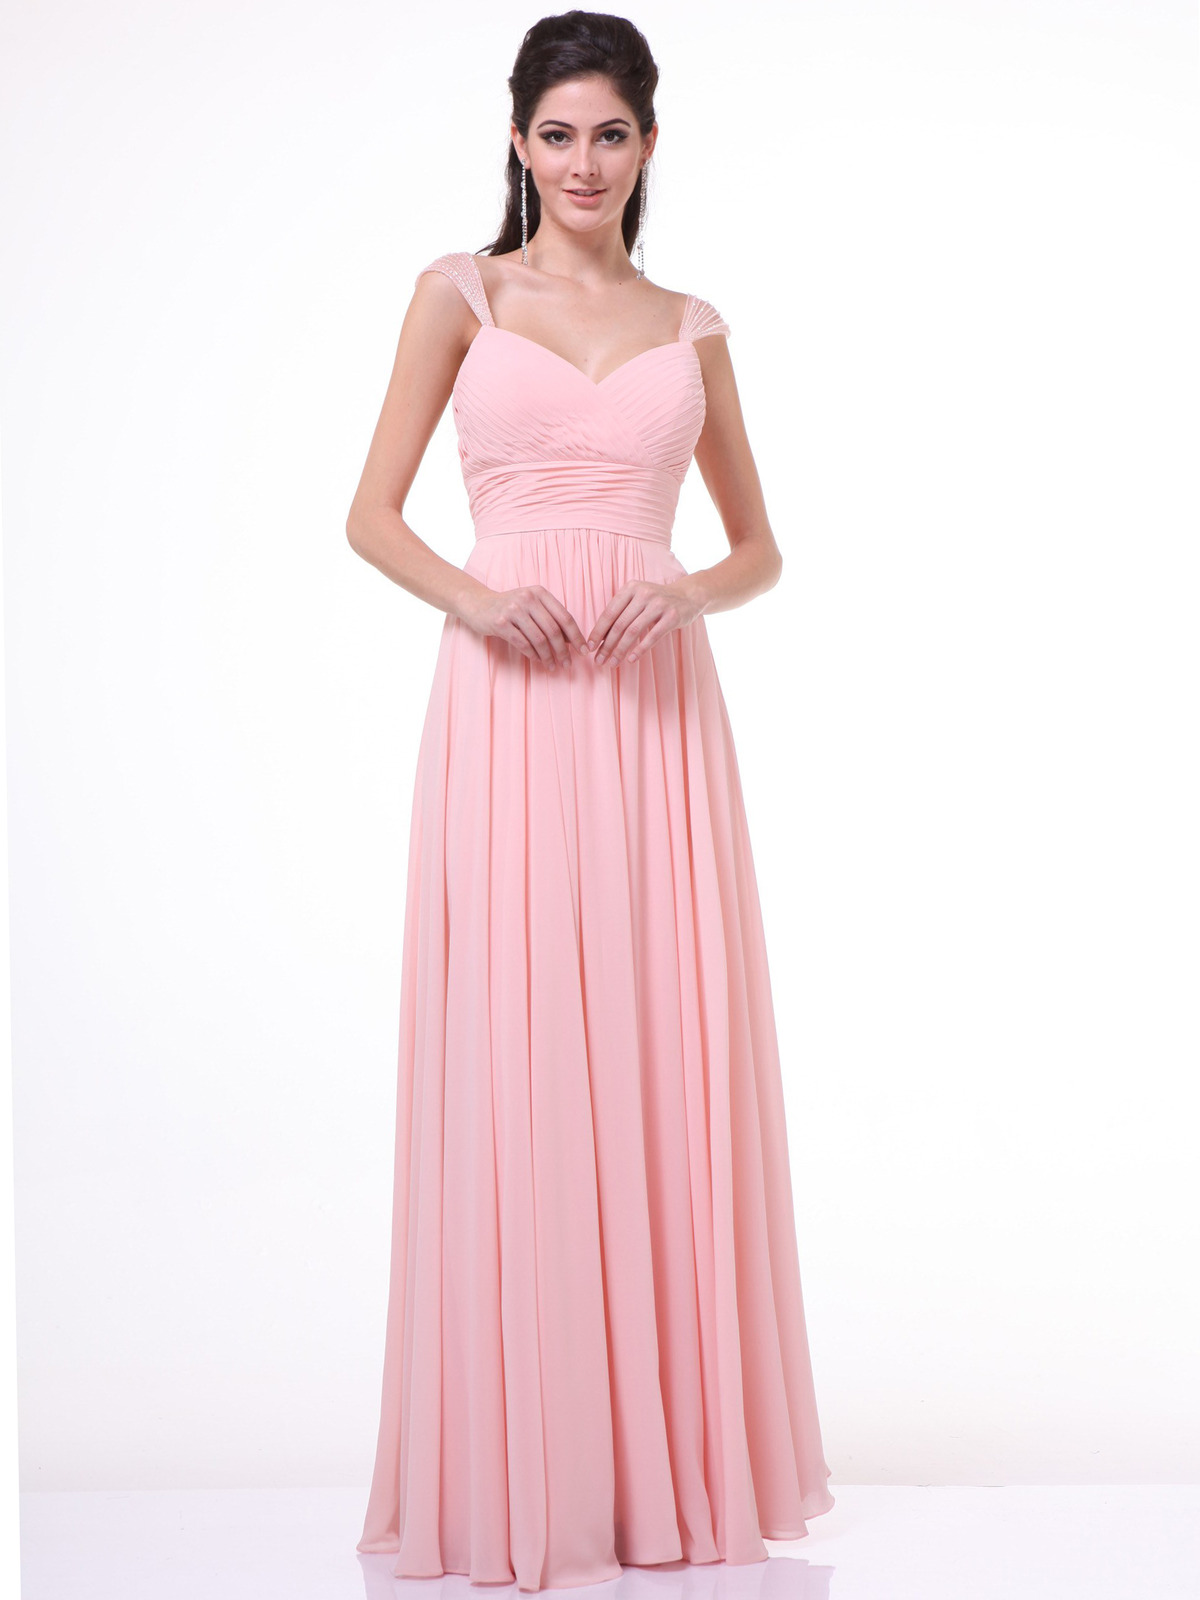 Pleated bodice bridesmaid dress sung boutique la c7461 pleated bodice bridesmaid dress blush front view medium ombrellifo Choice Image